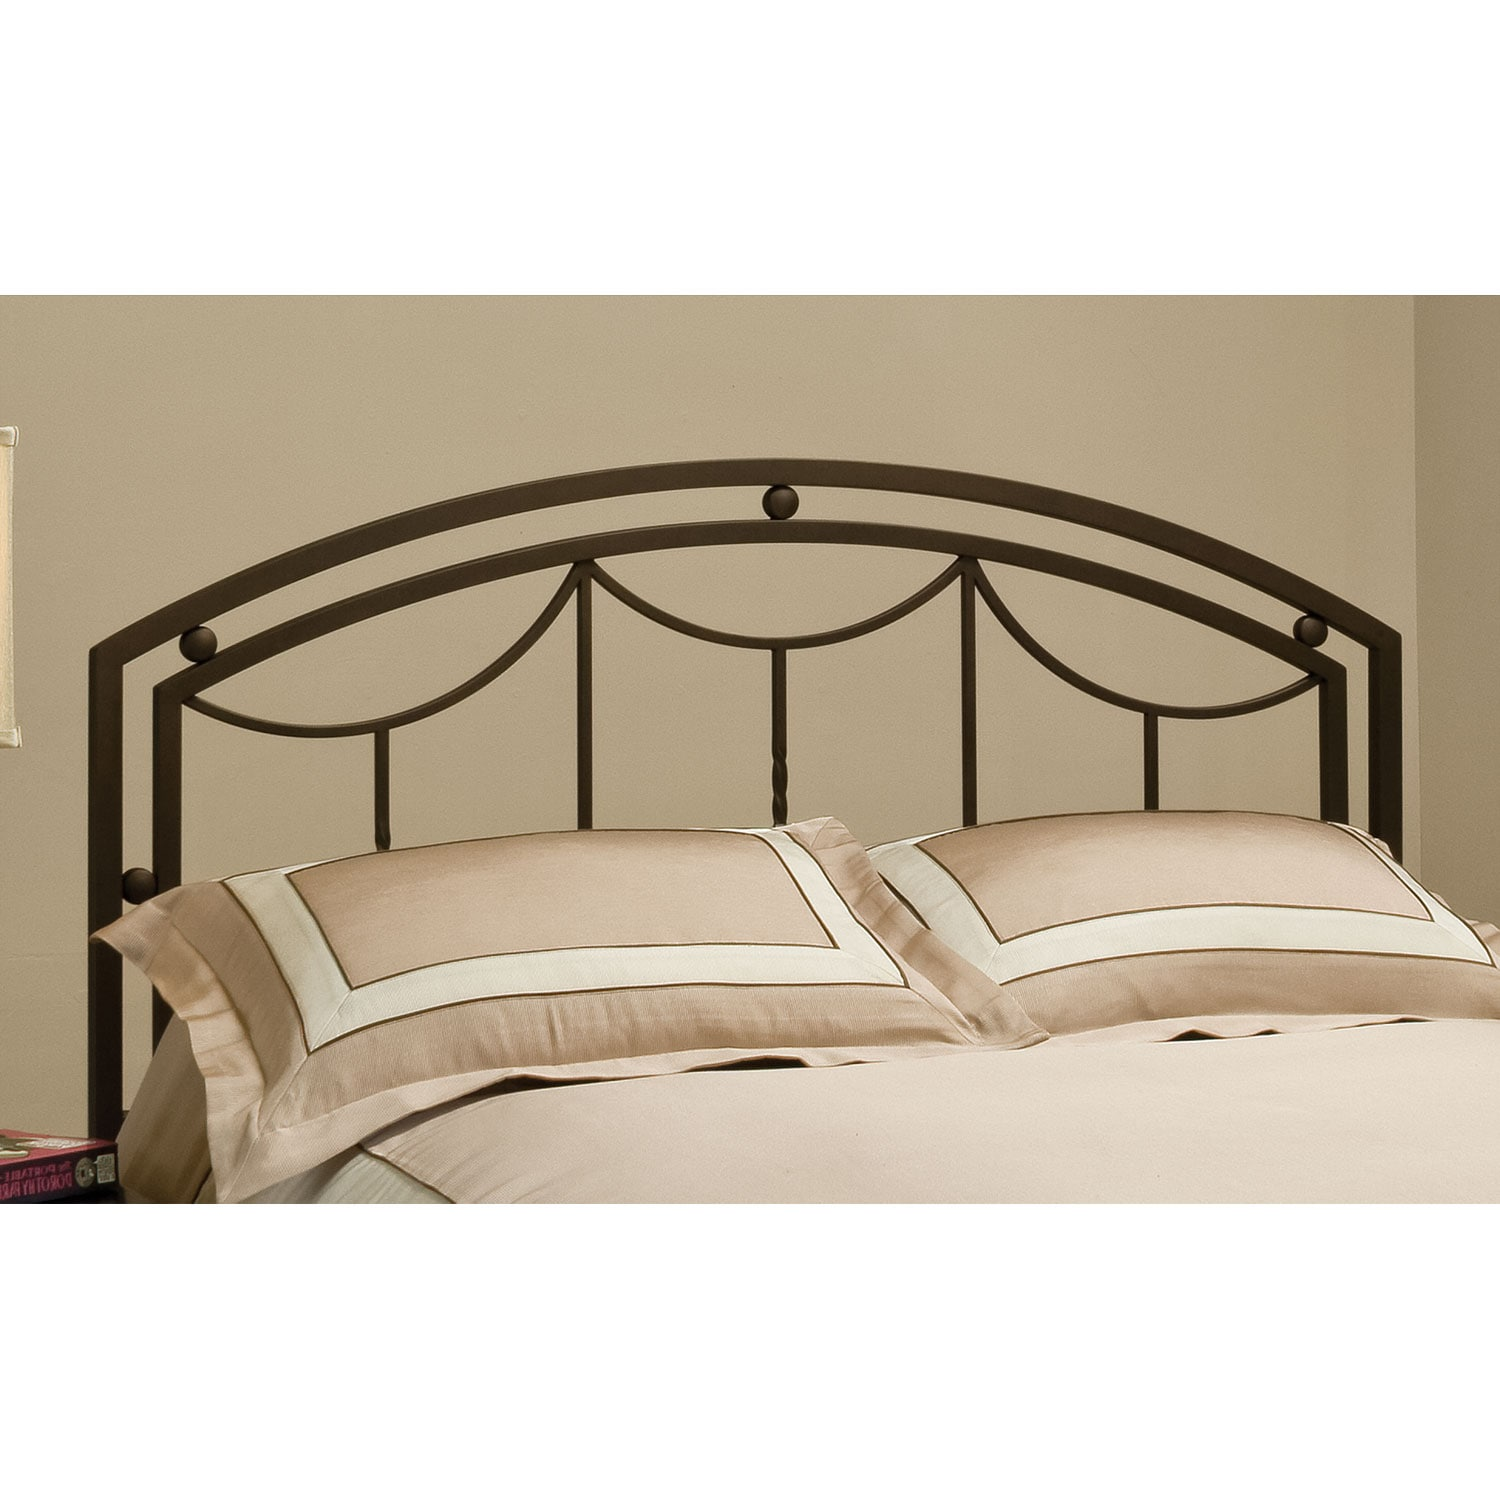 Arly King Headboard - Bronze